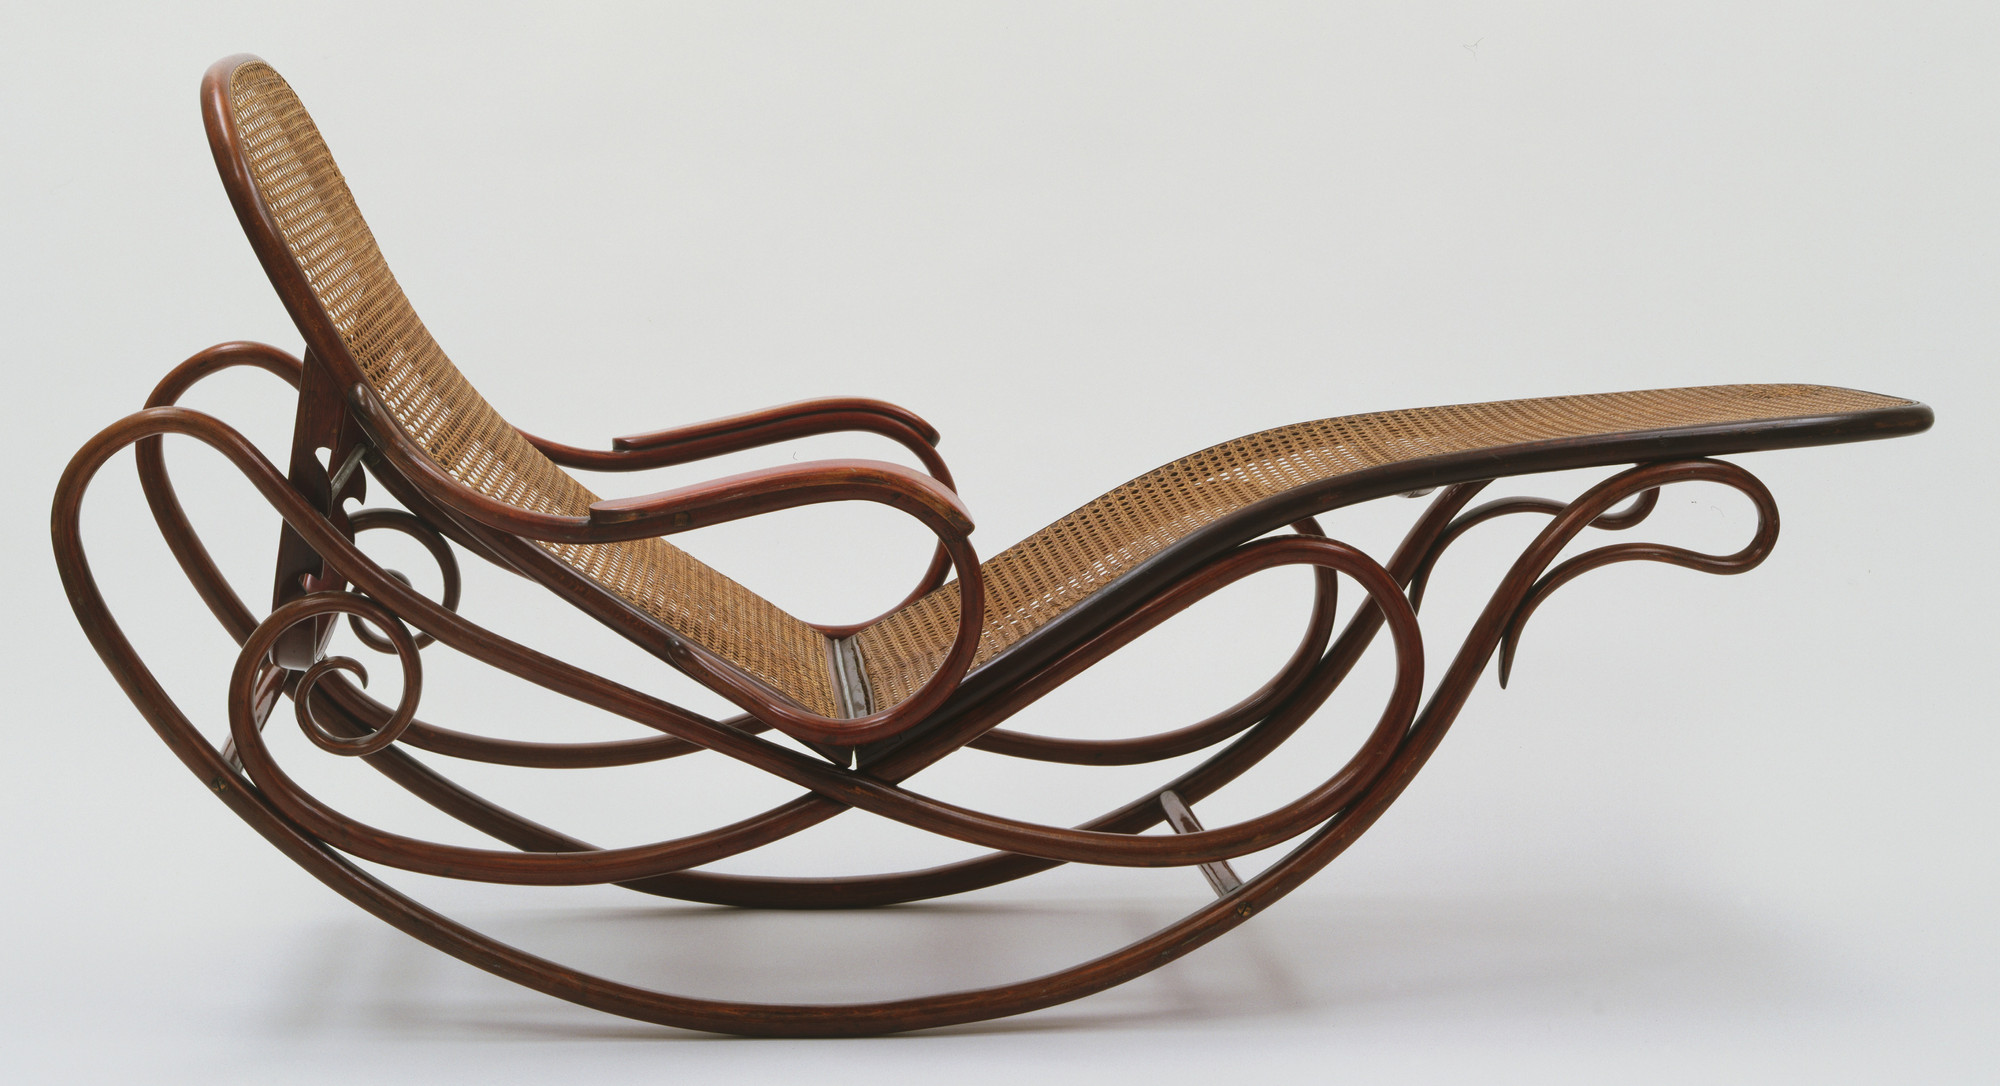 Gebrüder Thonet, company design. Rocking Chaise with Adjustable Back (model 7500). c. 1880